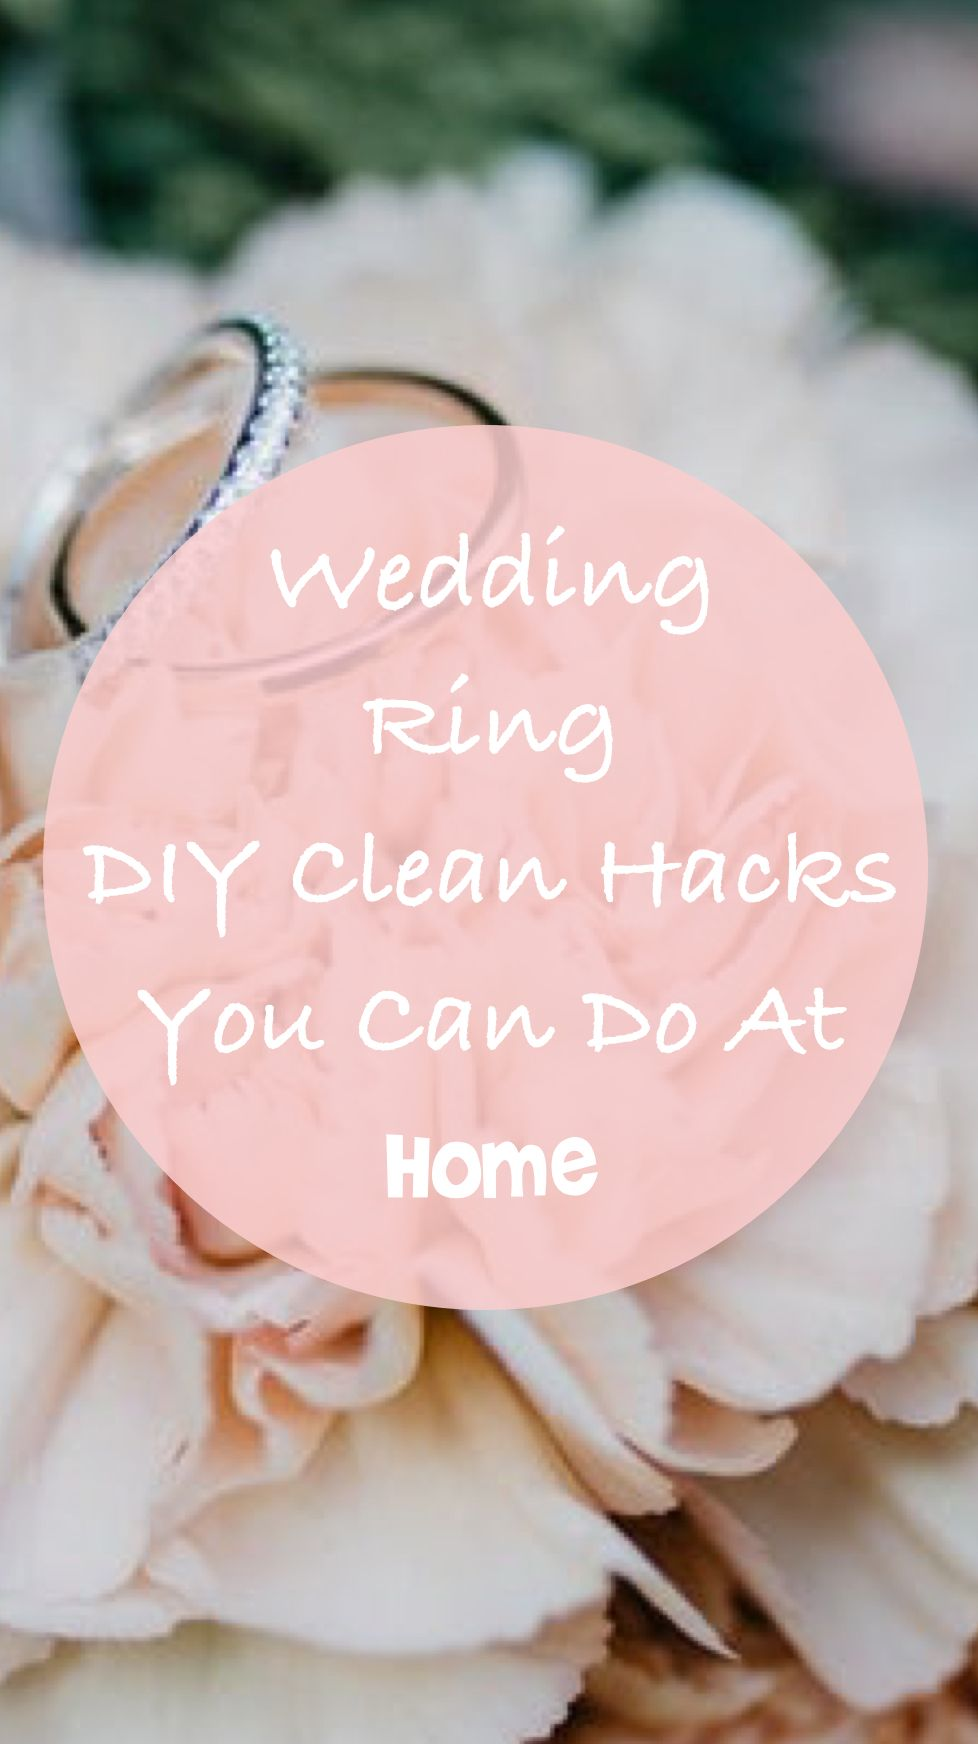 11 One Minute Heirloom Wedding Ring Cleaning Hacks | Ring and Fashion